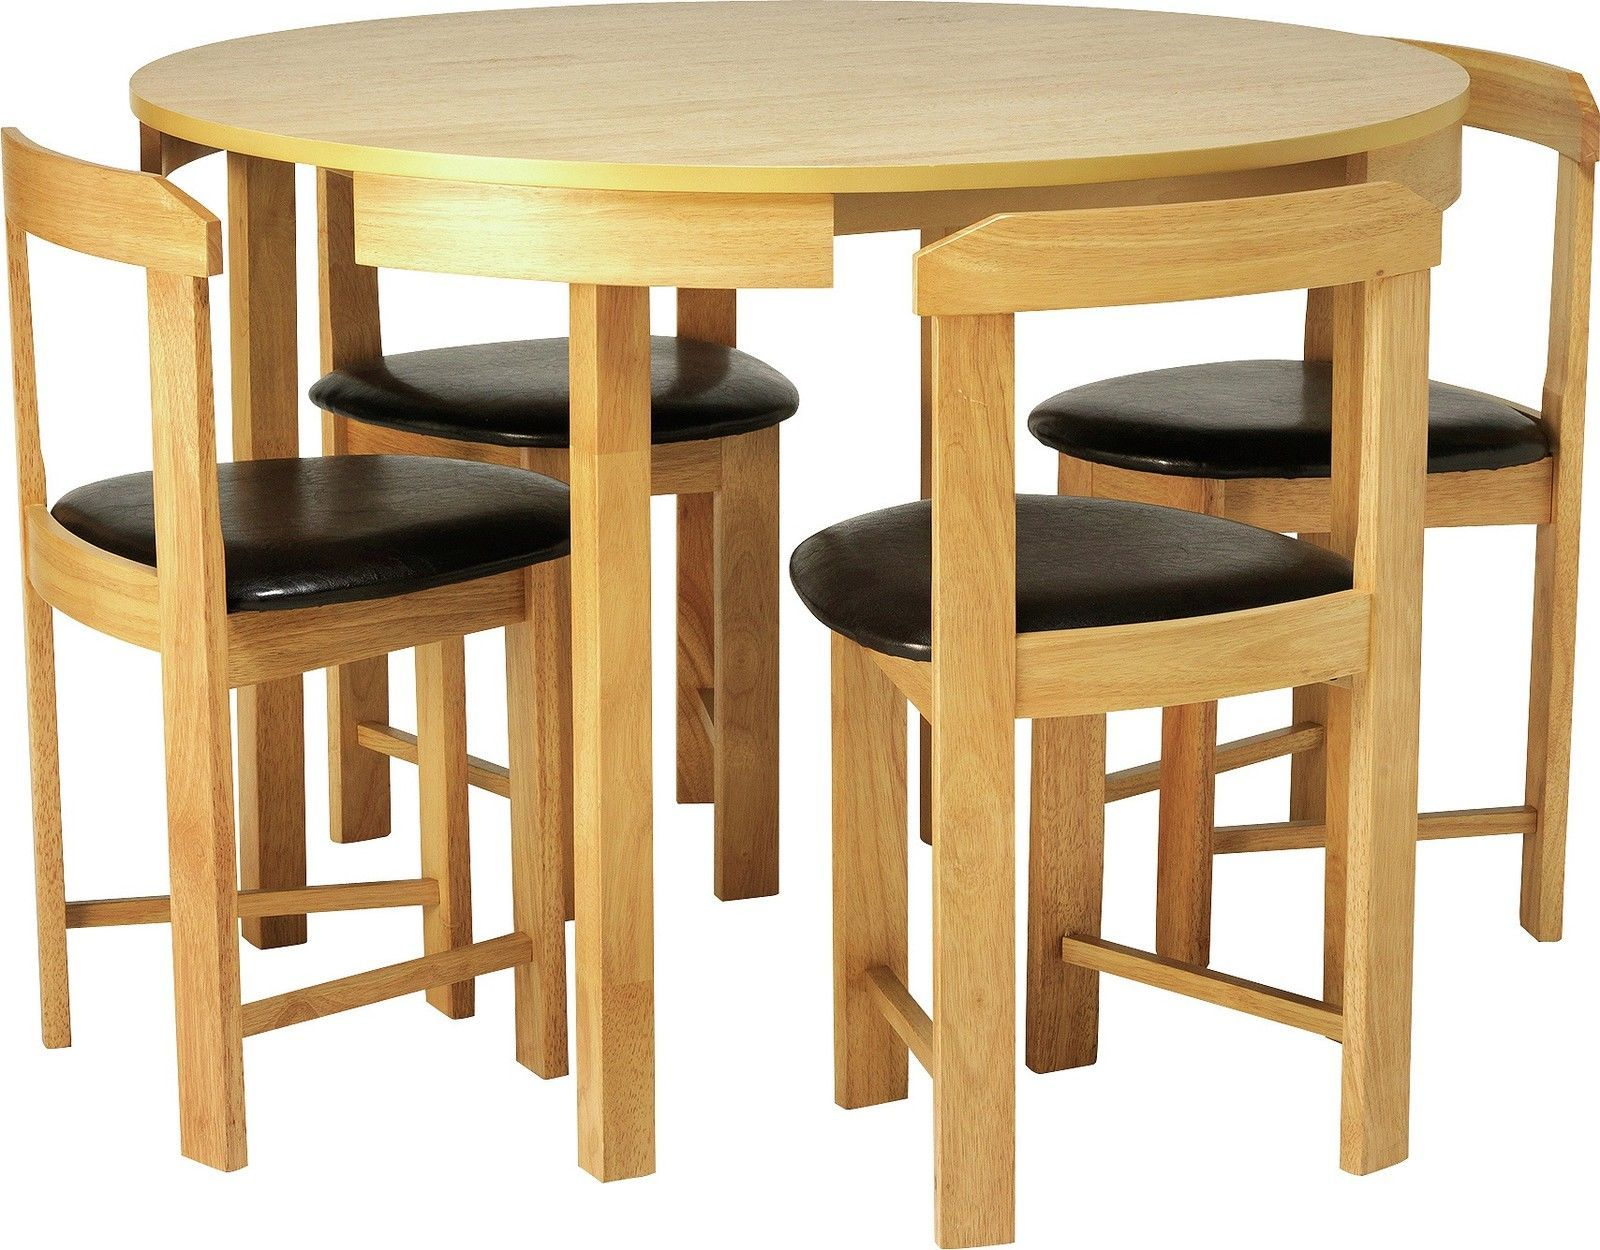 Hygena Alena Circular Dining Table And 4 Chairs Choice Of Colour